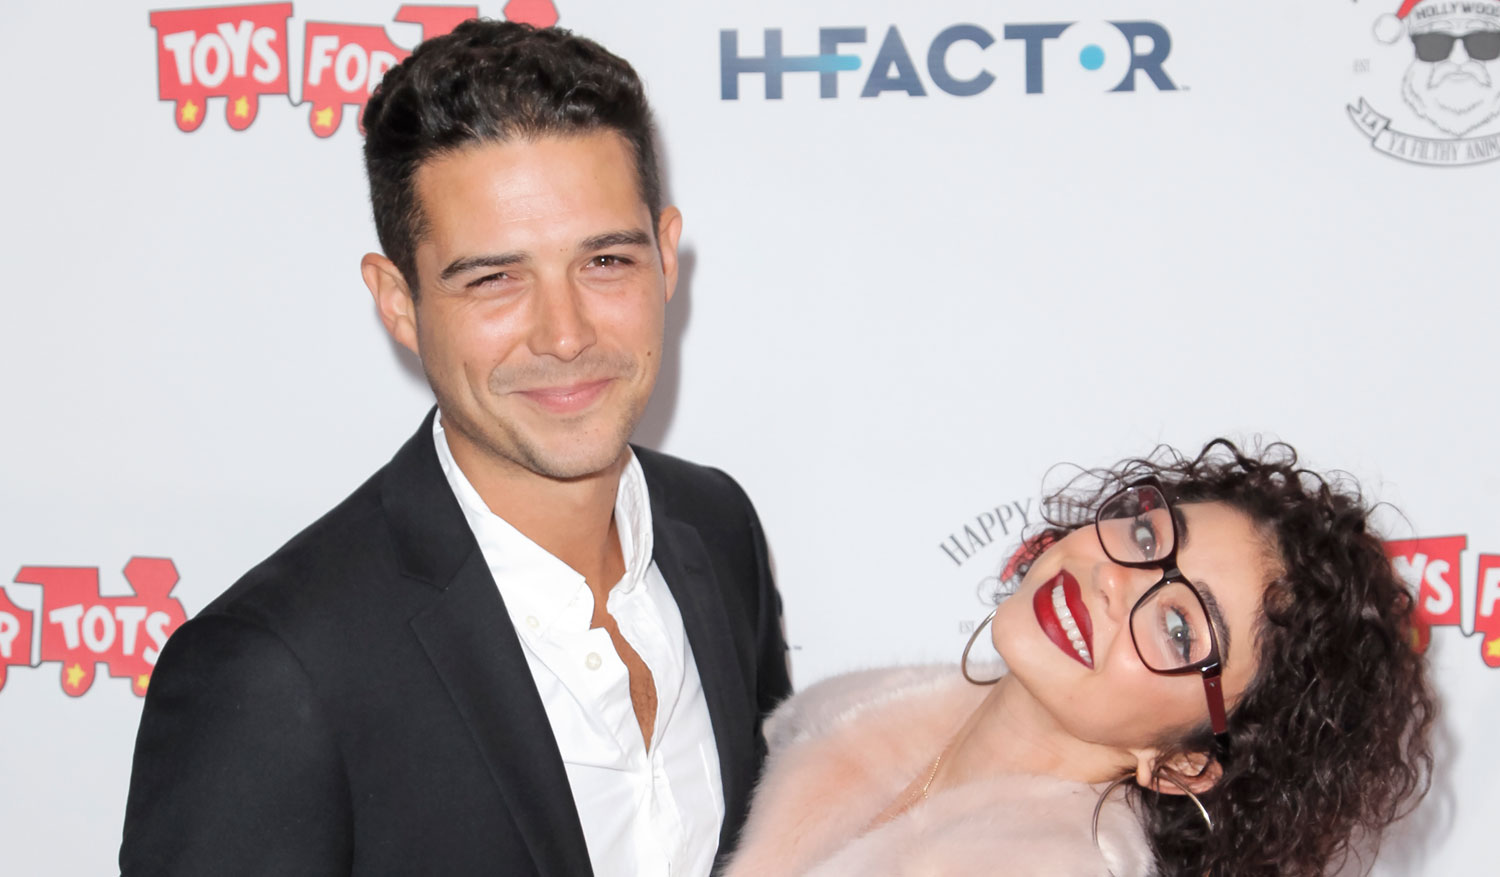 Sarah Hyland & Boyfriend Wells Adams Look Smitten at Toys for Tots Party!